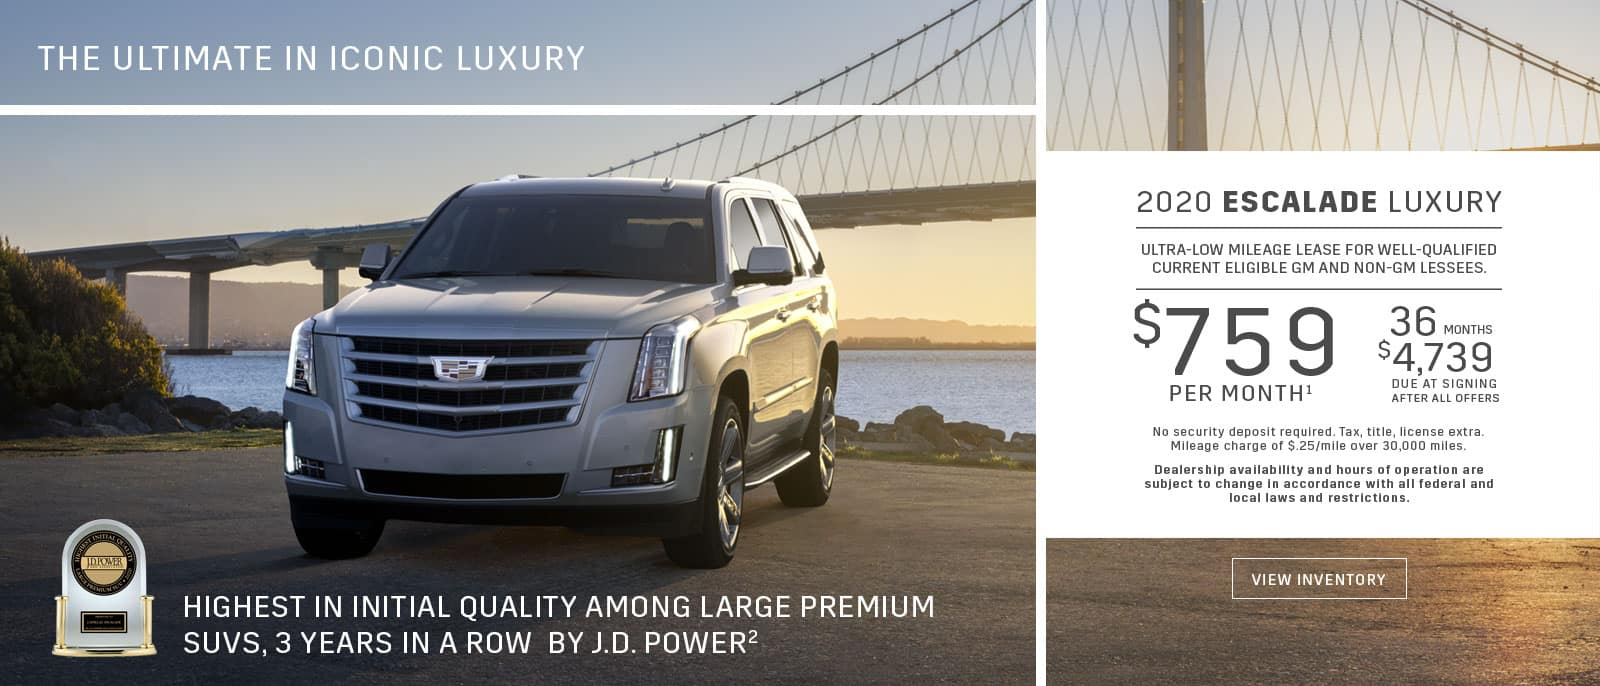 Cadillac Escalade Lease - JD Power Award